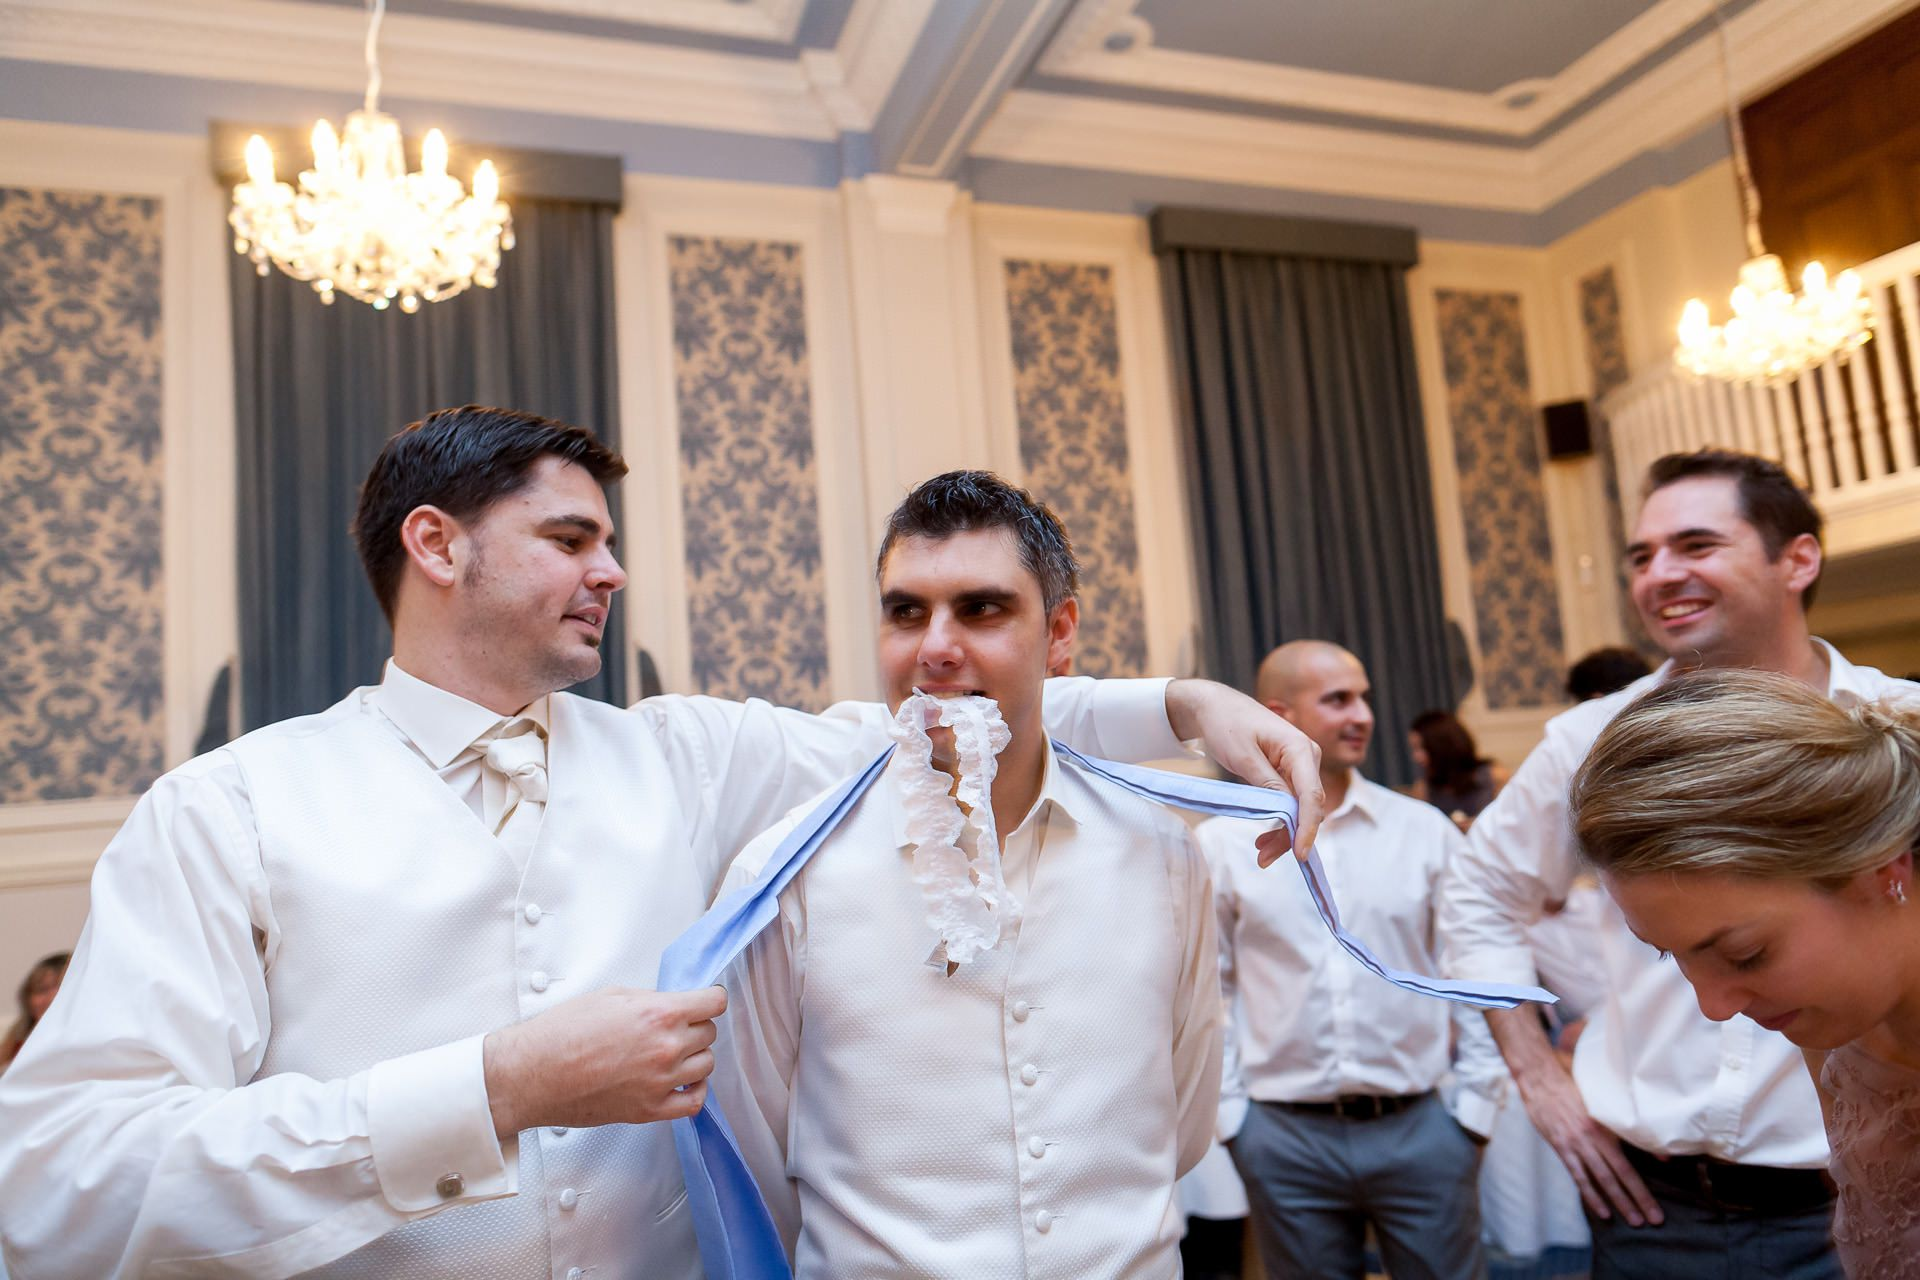 Greek Wedding groom hold the garter in his mouth